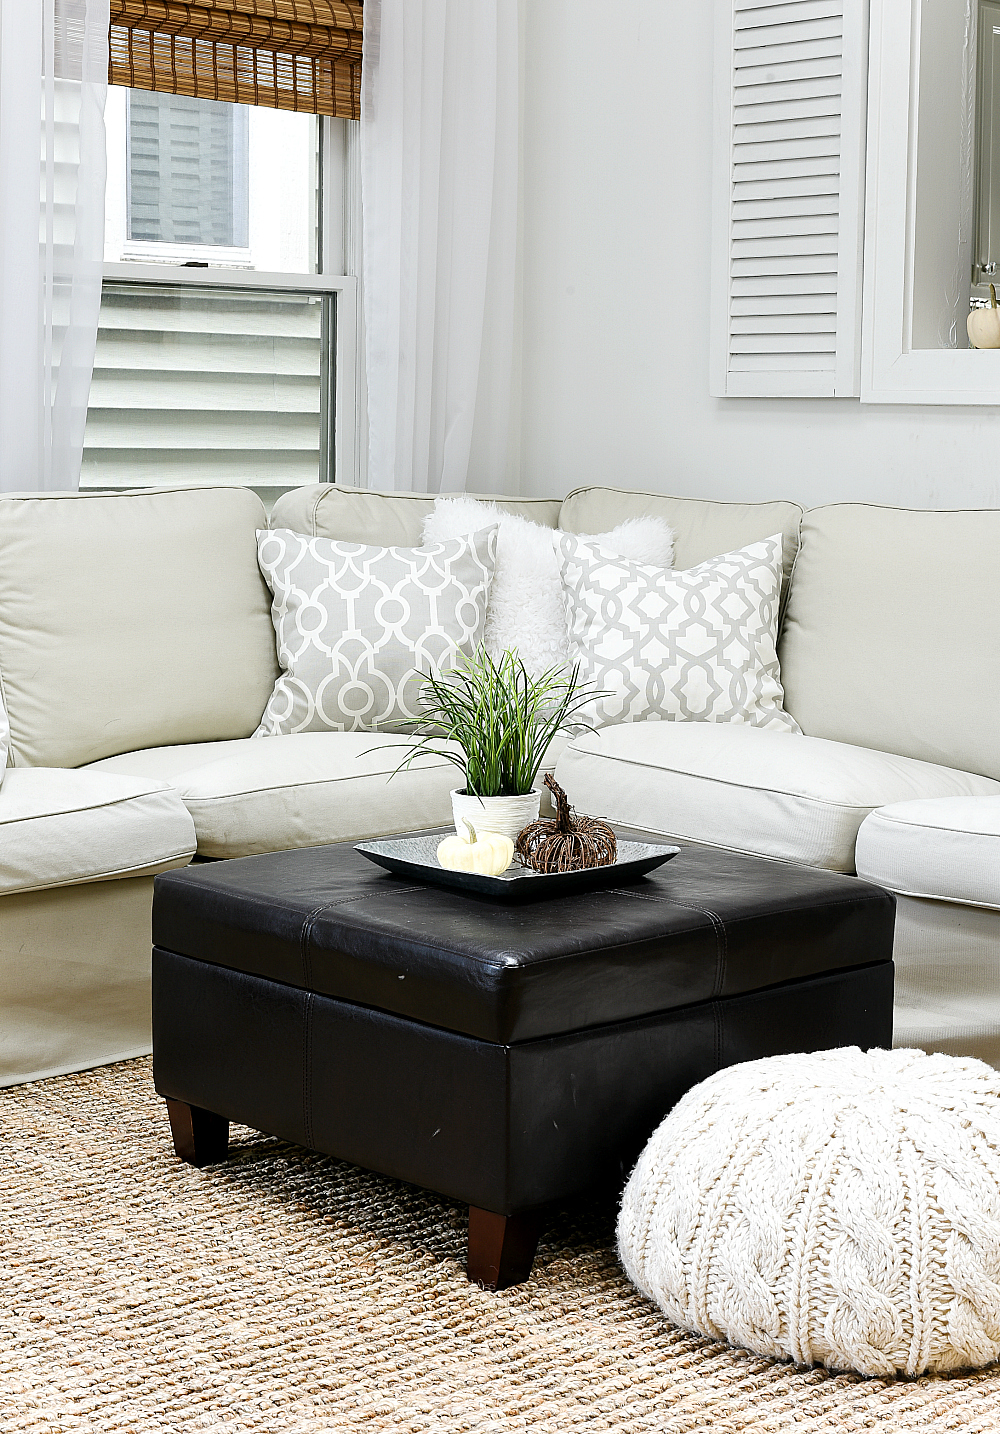 Neutral Gray, Greige, Jute Decor Ideas - It All Started With Paint